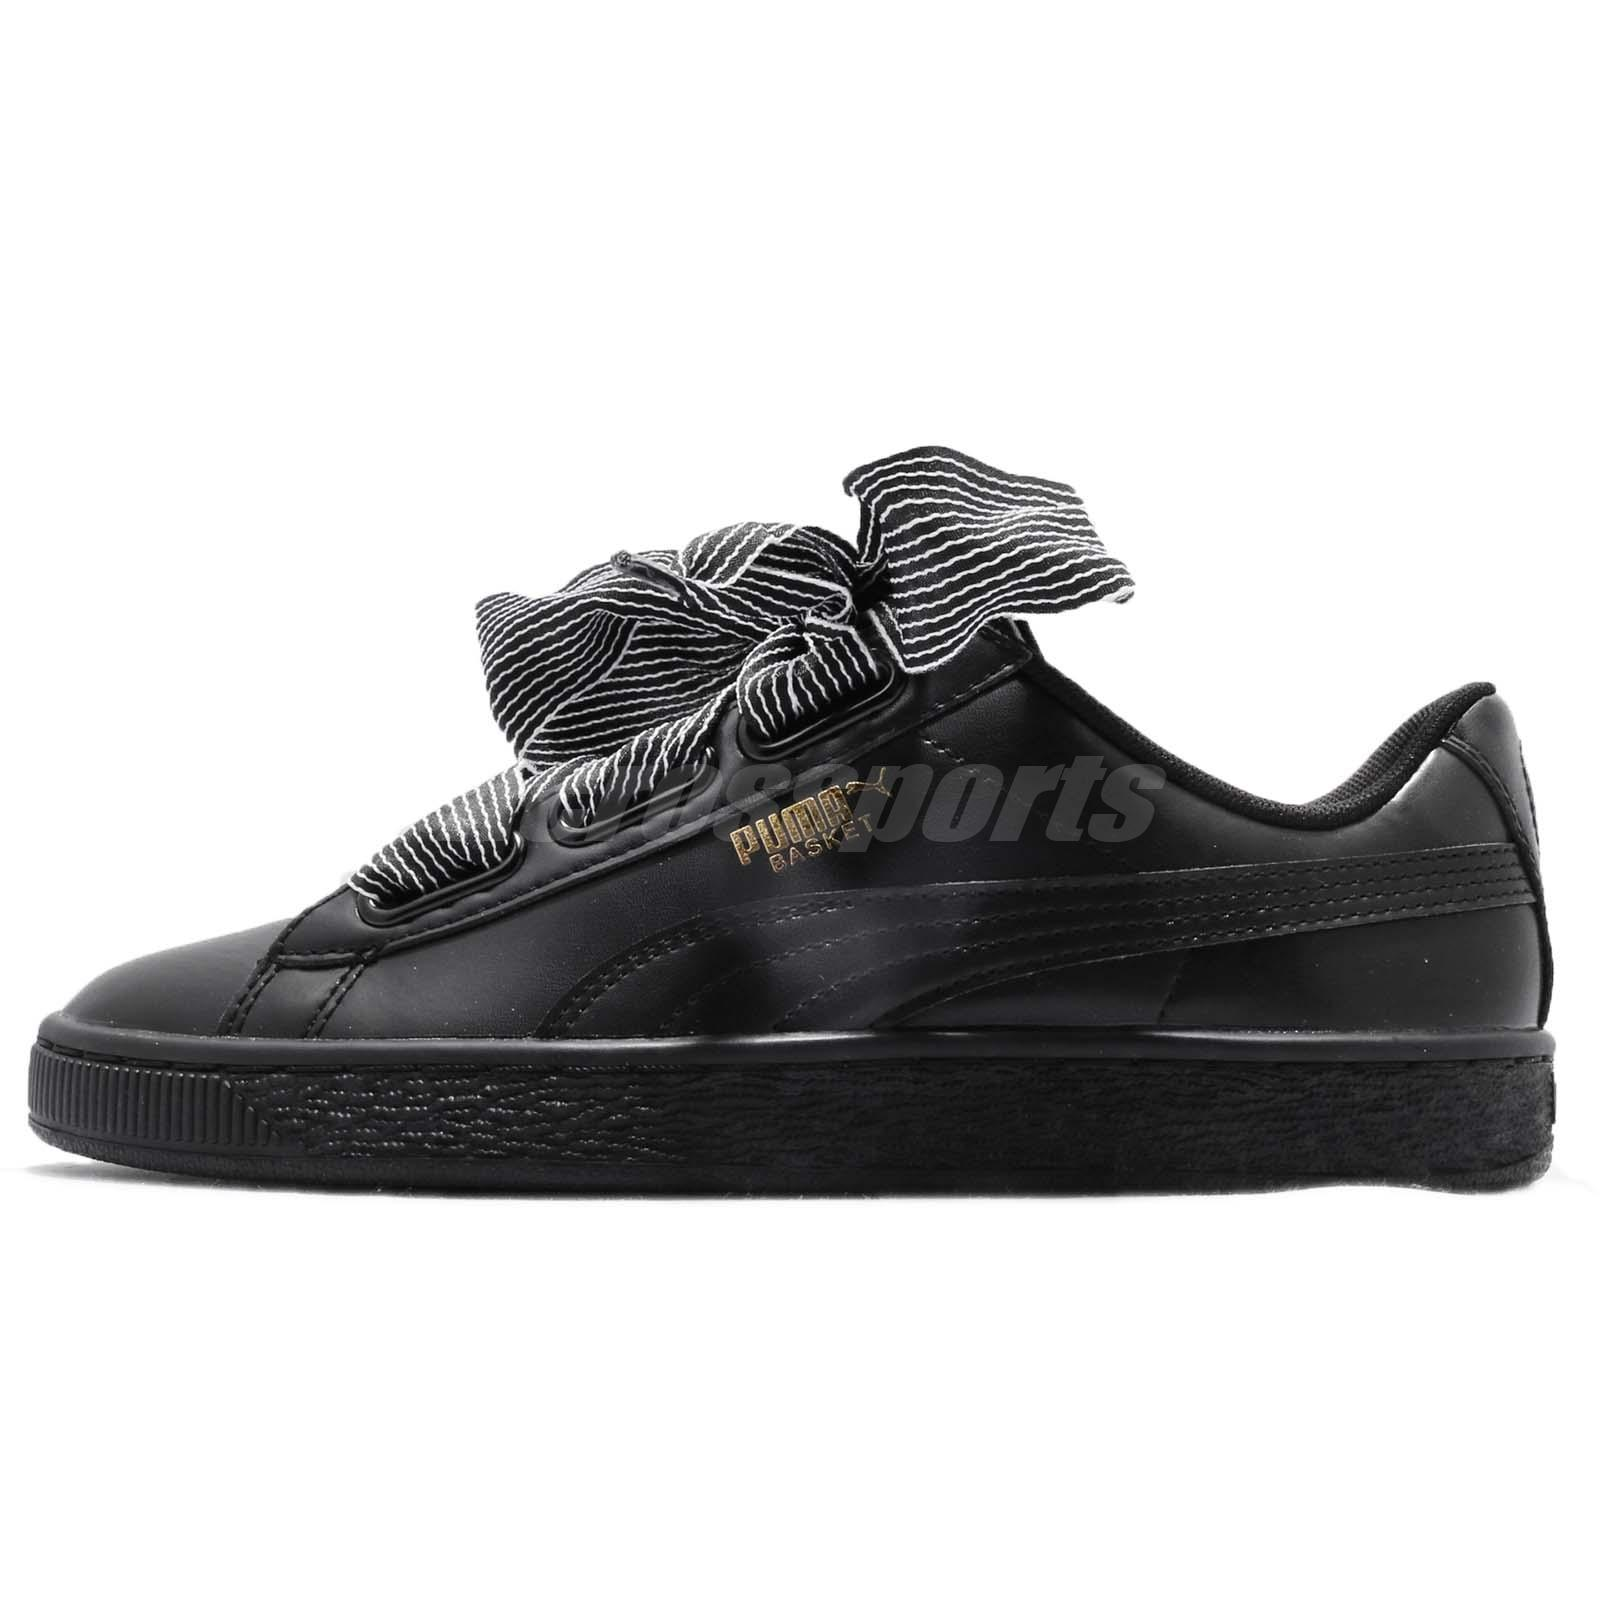 Puma Basket Heart Wns Black Women Casual Shoes Sneakers Trainers 365198-01 a4f1824c3